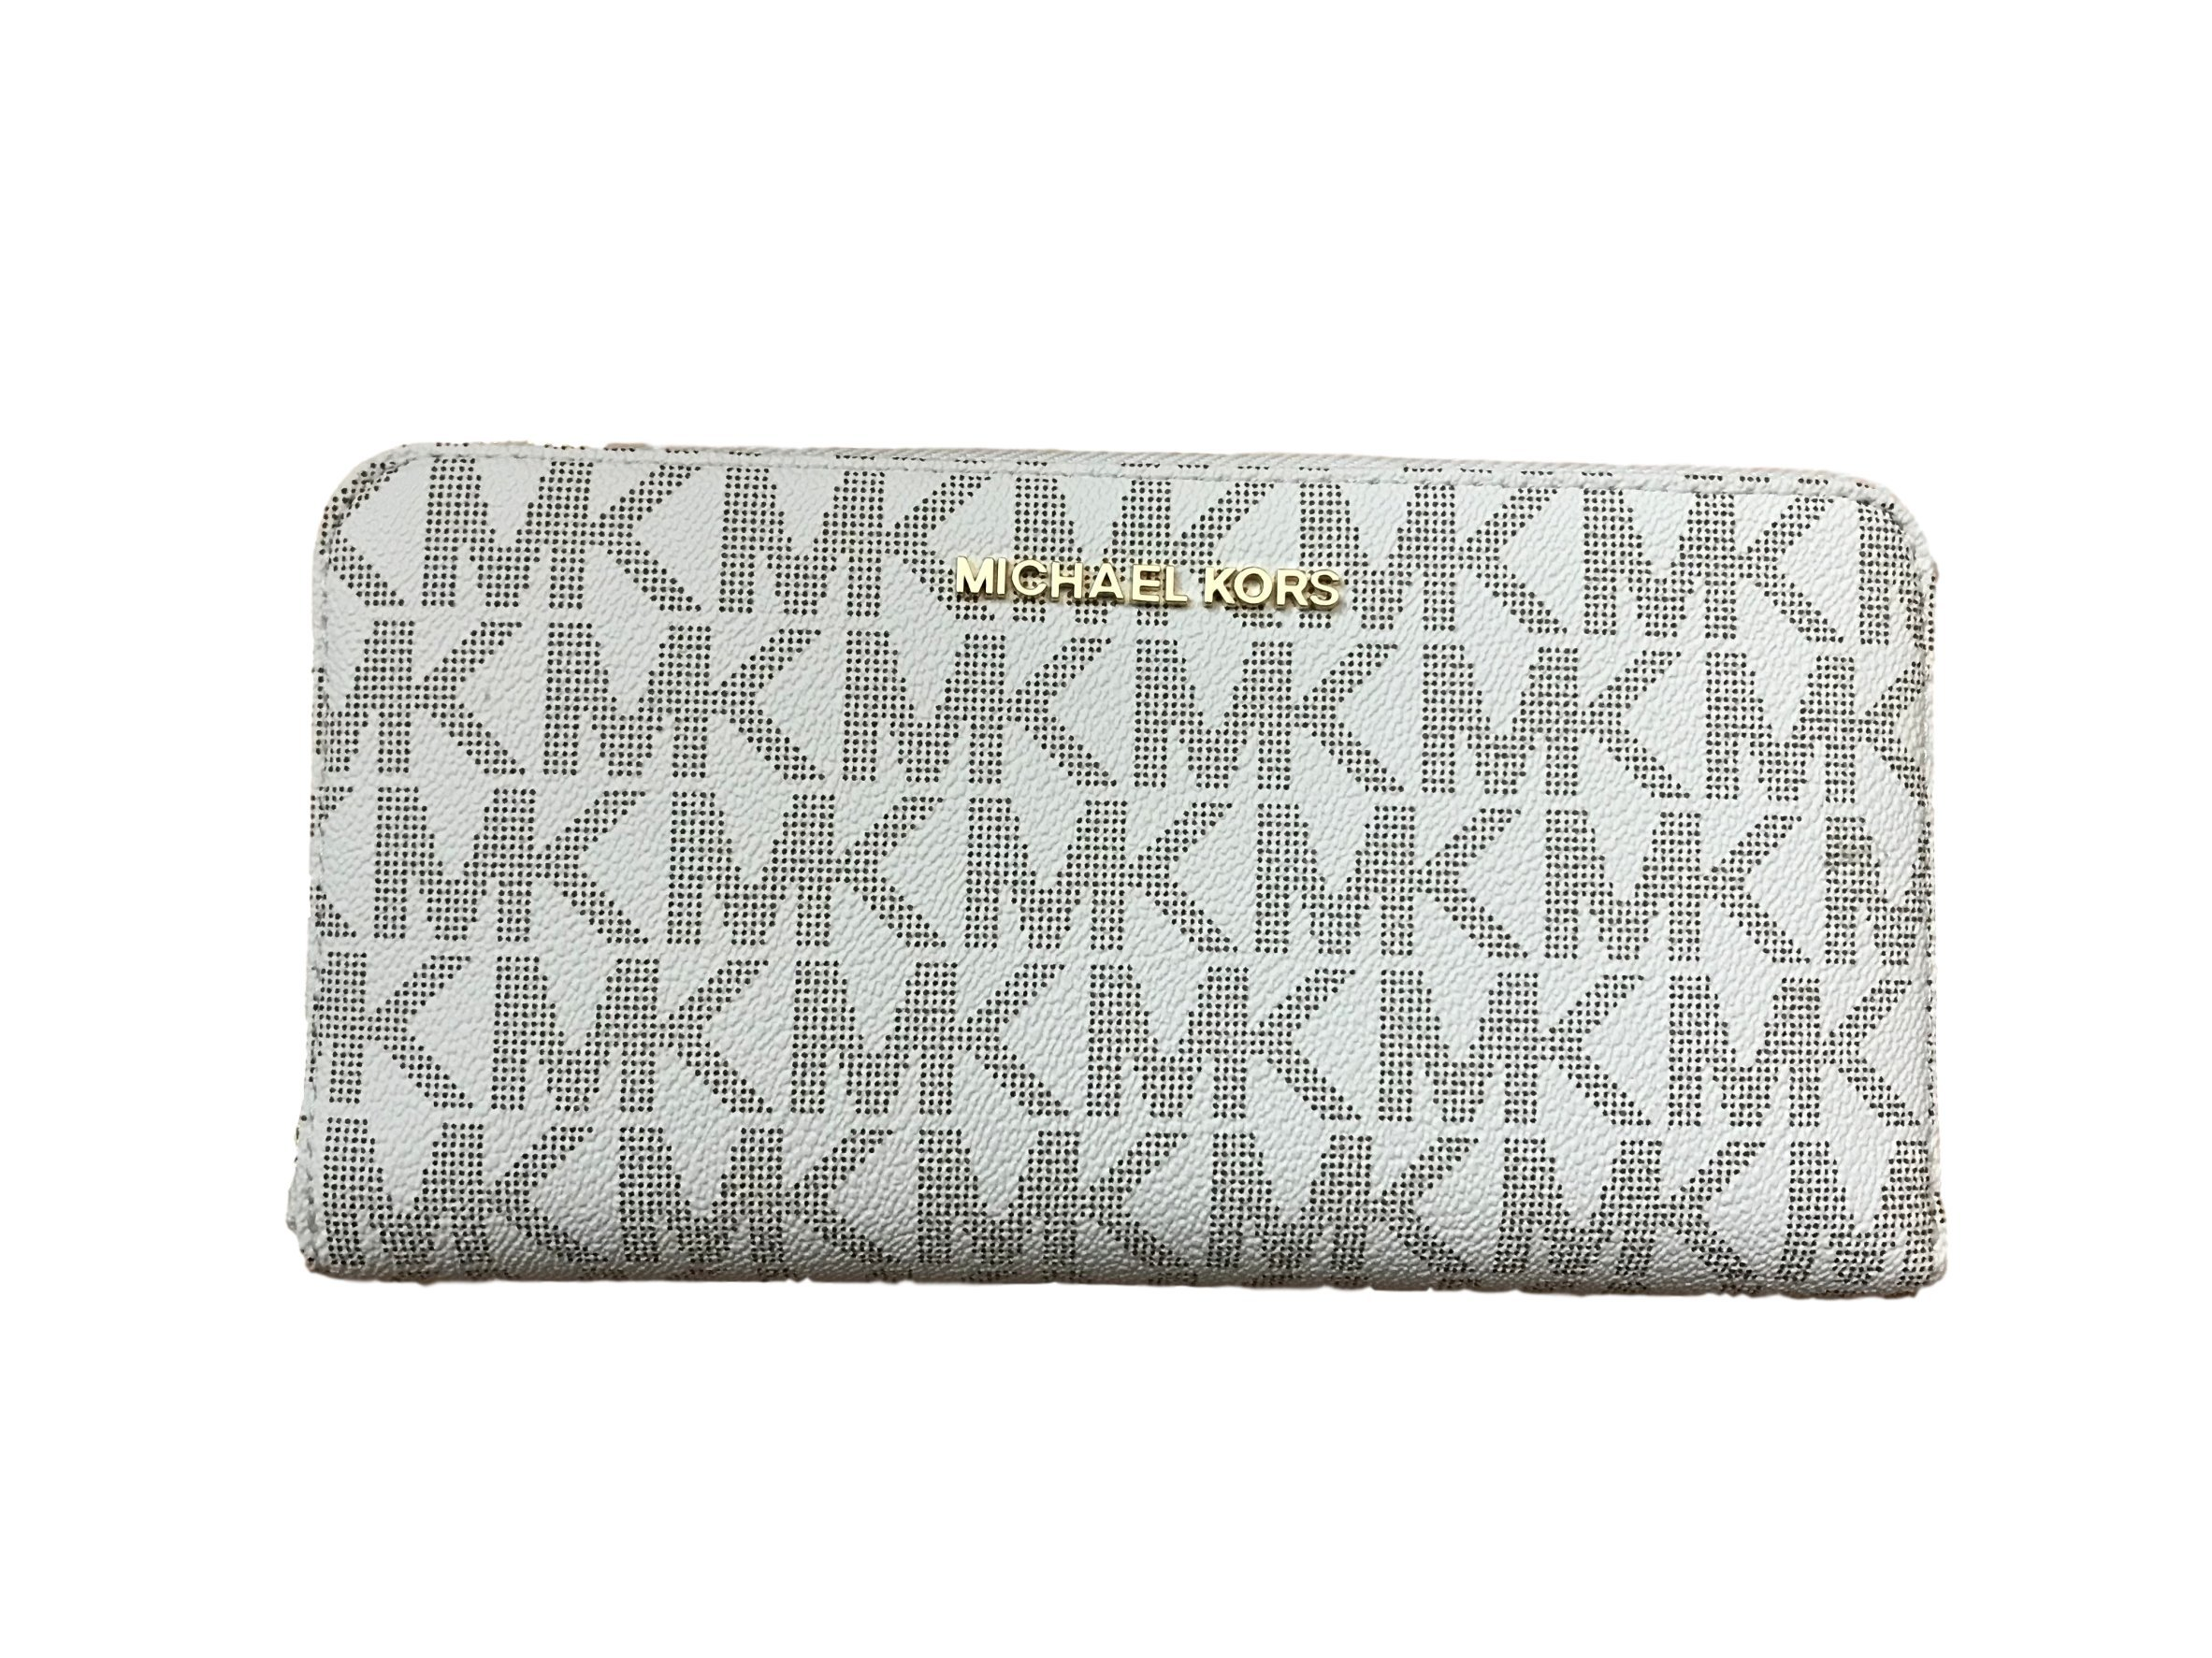 Michael Kors Jet Set Travel Zip Around Travel Monogram Wallet Vanilla PVC